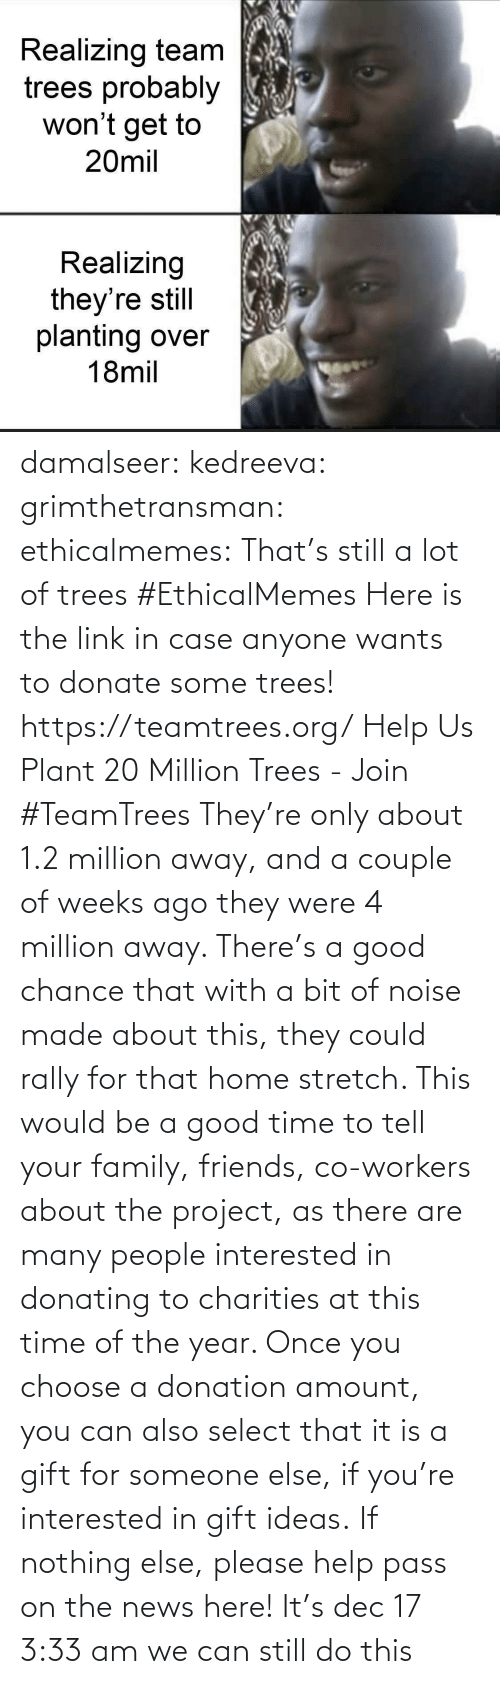 site: Realizing team  trees probably  won't get to  20mil  Realizing  they're still  planting over  18mil damalseer:  kedreeva: grimthetransman:  ethicalmemes:  That's still a lot of trees #EthicalMemes   Here is the link in case anyone wants to donate some trees!  https://teamtrees.org/ Help Us Plant 20 Million Trees - Join #TeamTrees  They're only about 1.2 million away, and a couple of weeks ago they were 4 million away. There's a good chance that with a bit of noise made about this, they could rally for that home stretch. This would be a good time to tell your family, friends, co-workers about the project, as there are many people interested in donating to charities at this time of the year. Once you choose a donation amount, you can also select that it is a gift for someone else, if you're interested in gift ideas. If nothing else, please help pass on the news here!    It's dec 17 3:33 am we can still do this